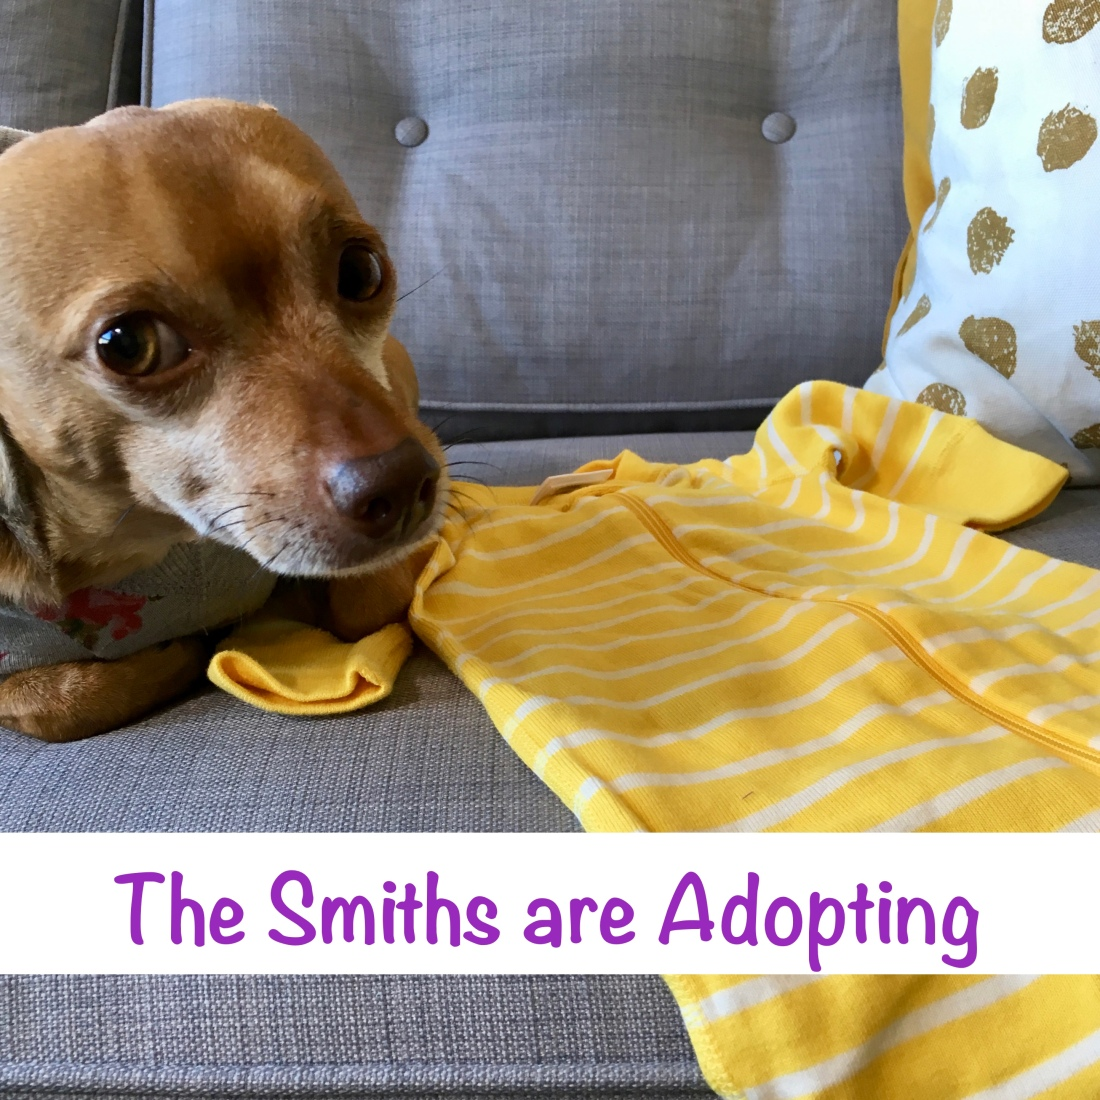 "Dog sitting next to a baby outfit with the text ""The Smiths are Adopting."""